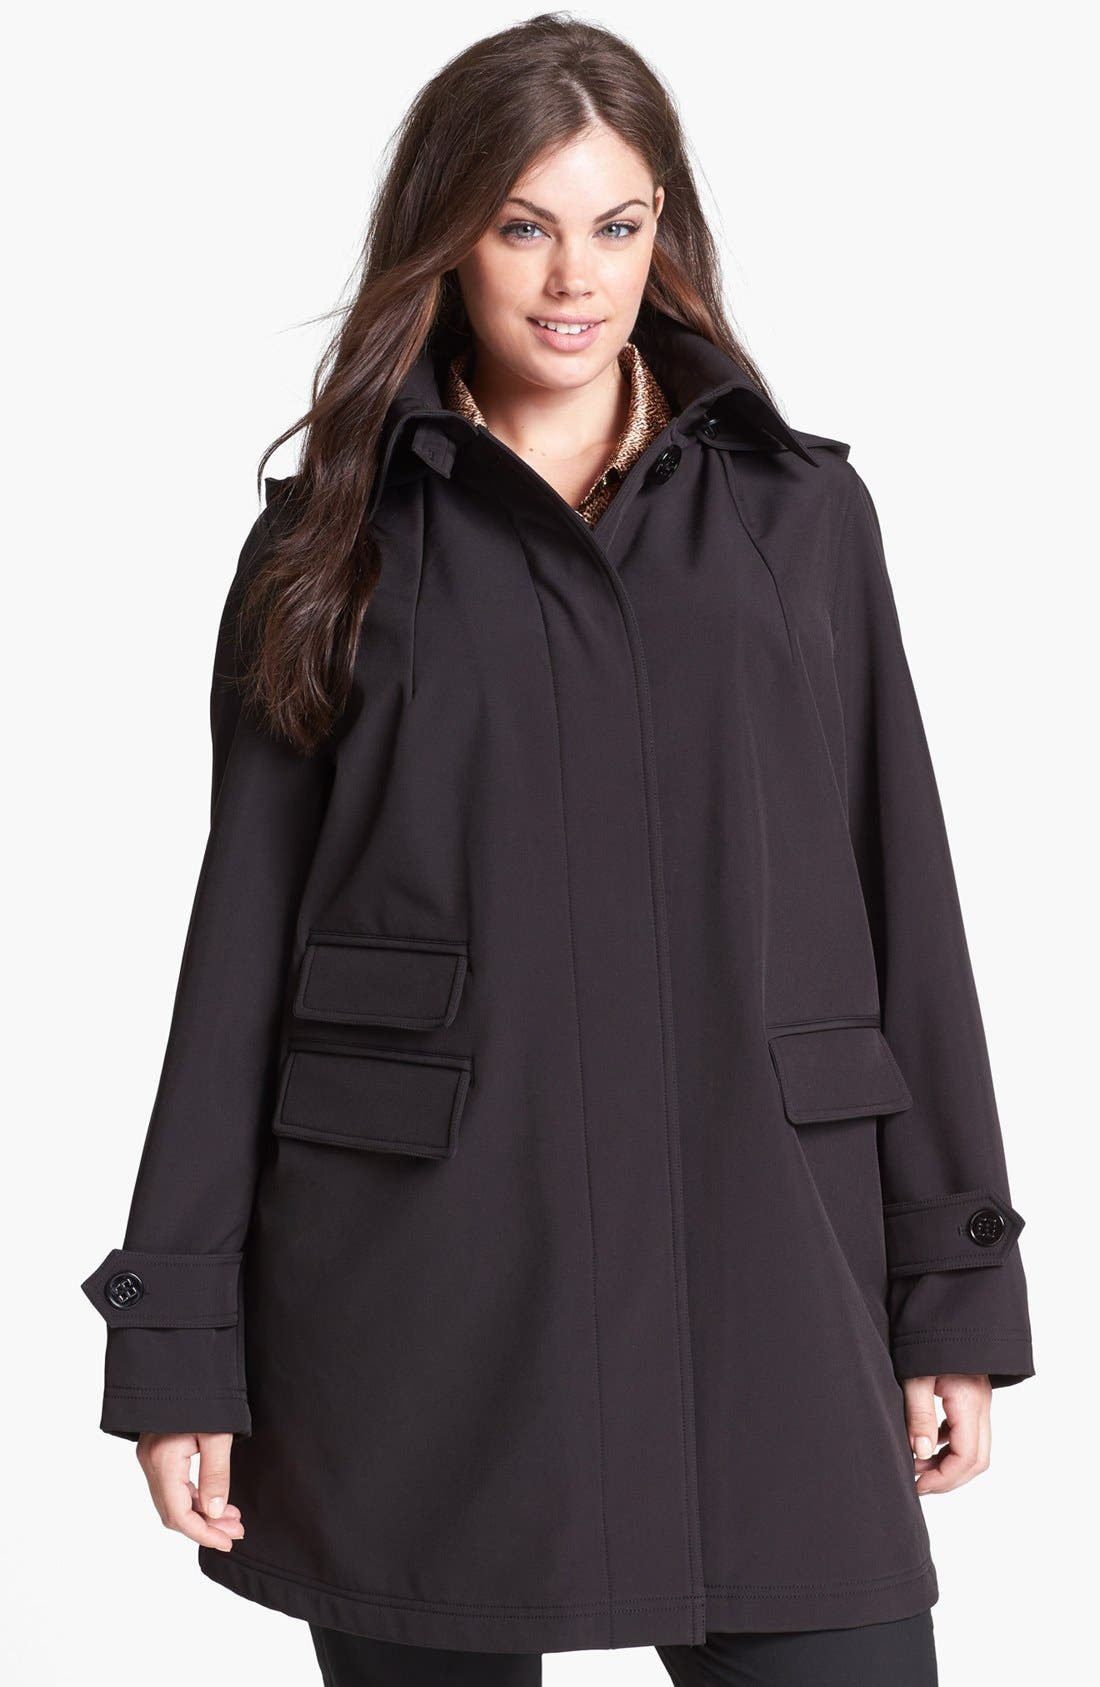 Main Image - Gallery Soft Shell Swing Coat with Detachable Hood (Plus Size)